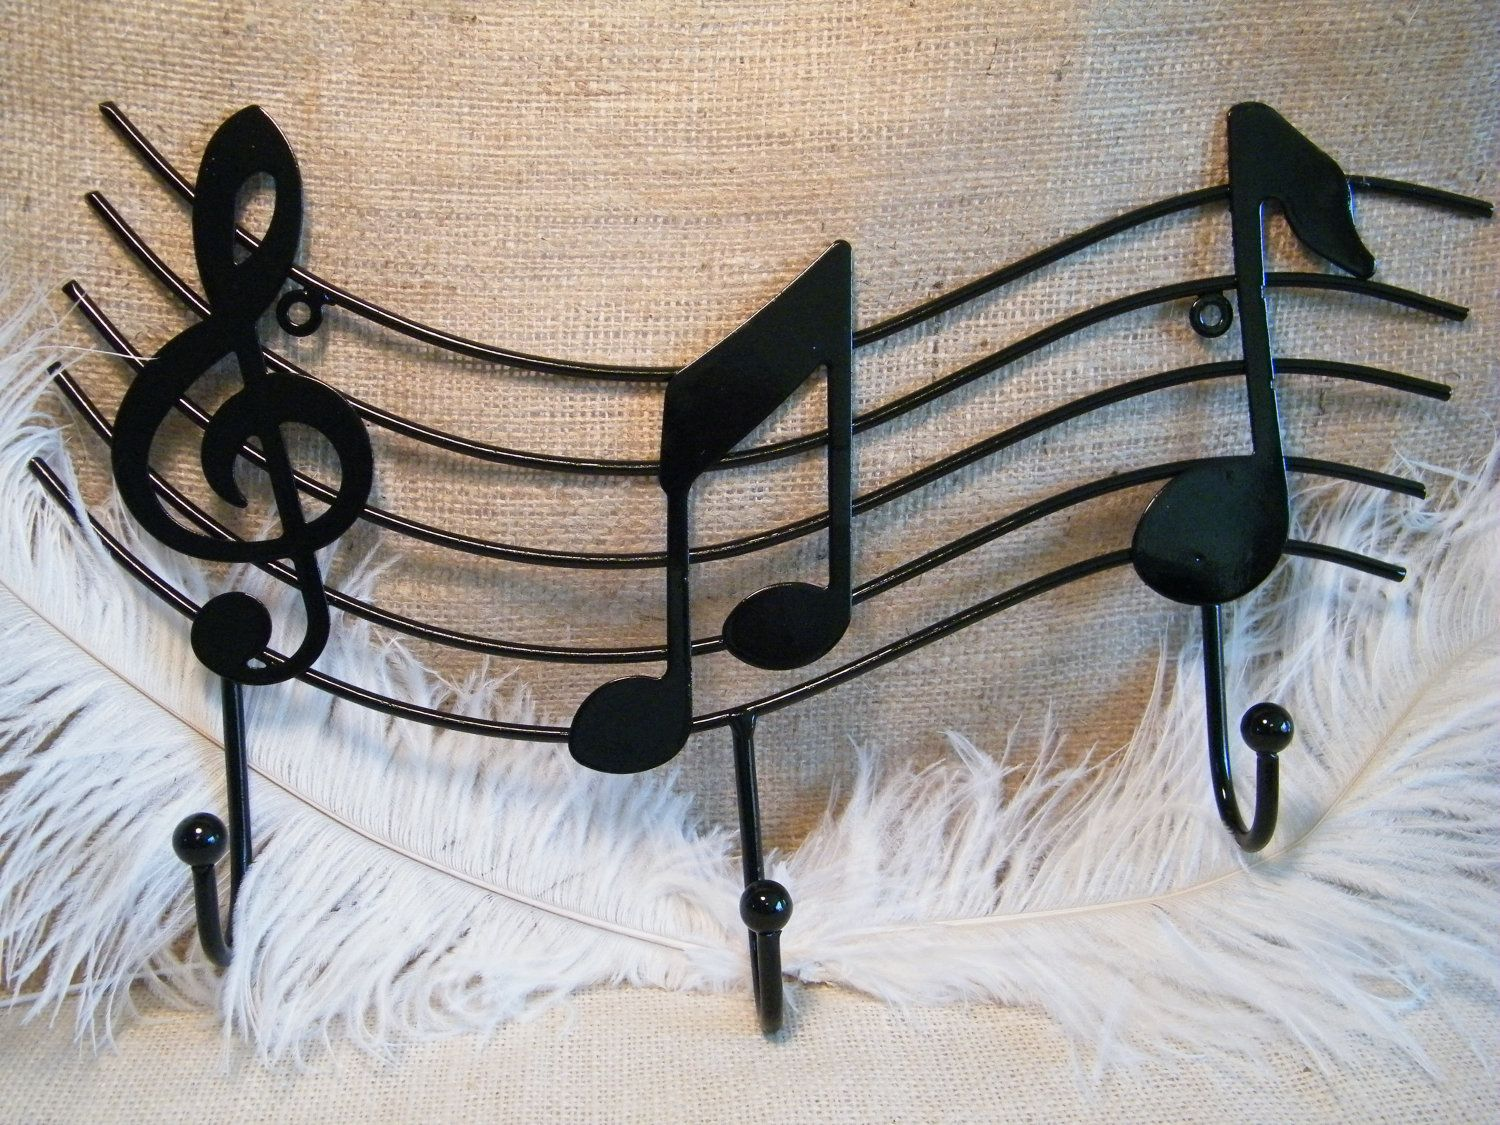 Black Wall Hook  Treble Clef And Music Notes   Coat Rack   Organization   Towel Rack   Music Lovers Gift   Key Holders   Holiday Gift Idea. $23.95,  Via Etsy.